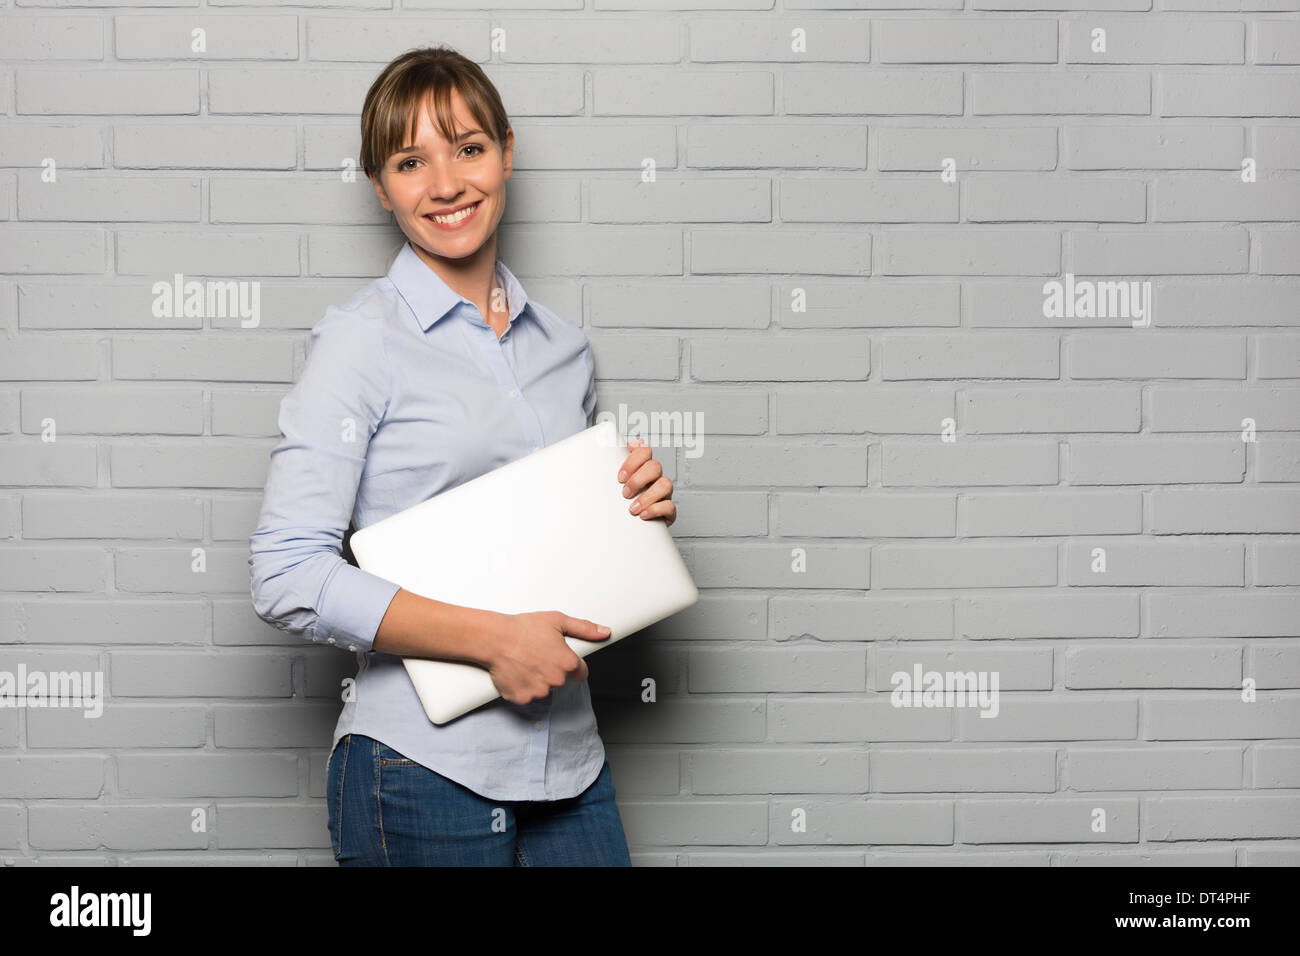 Portrait of young woman with computer in studio, looking camera - Stock Image